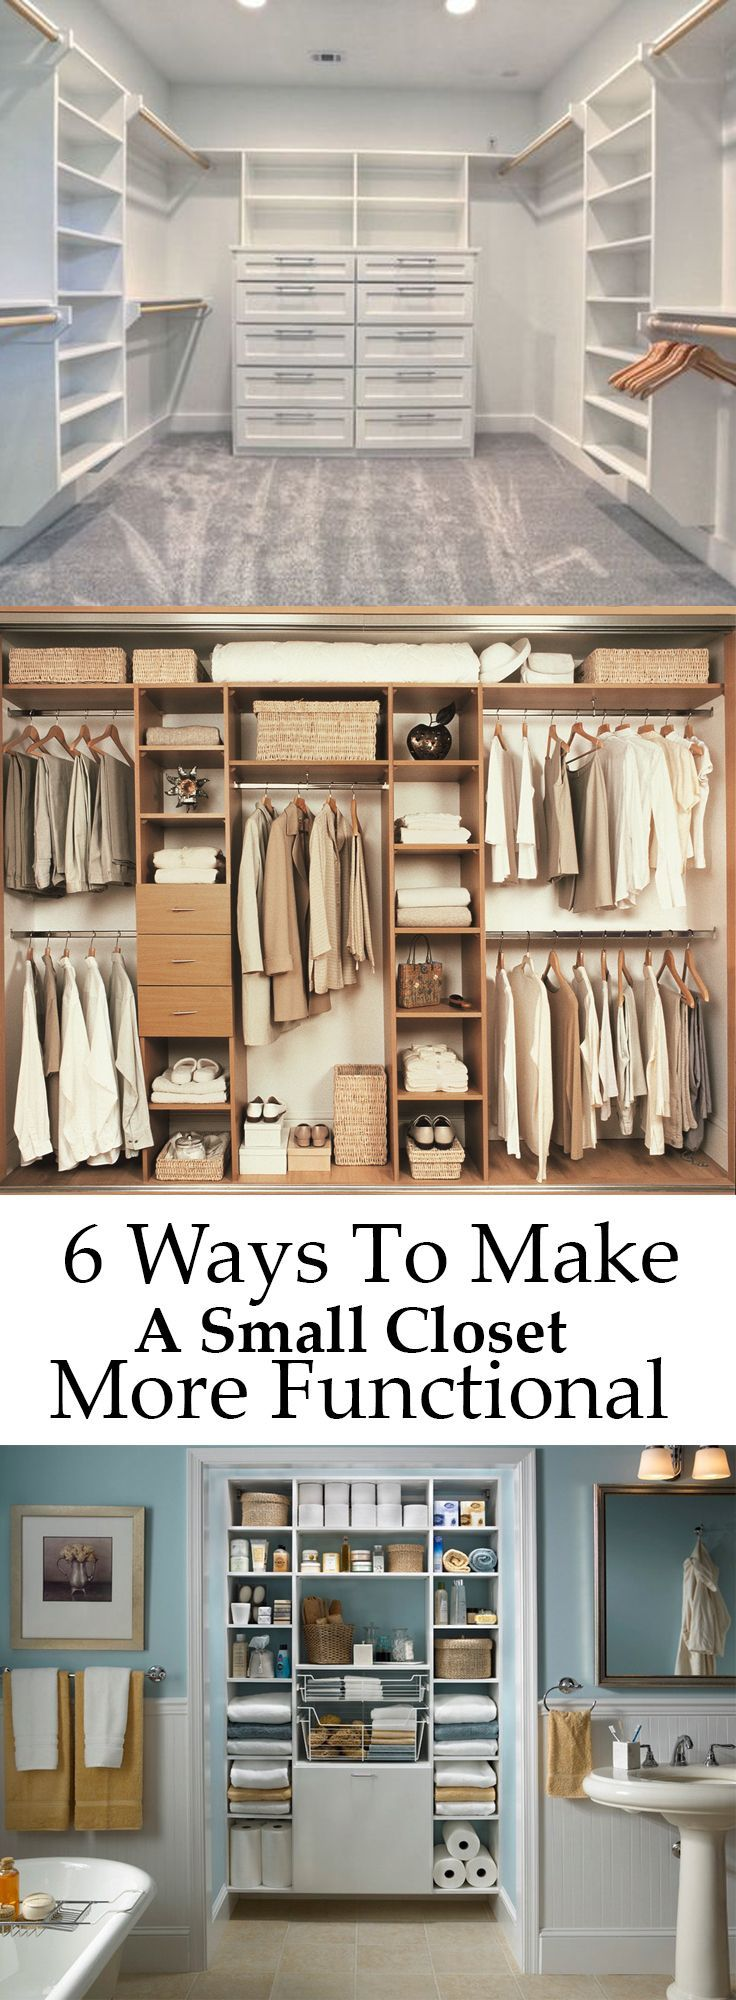 The 25+ Best Closet Designs Ideas On Pinterest | Master Closet Design, Closet  Remodel And Master Closet Layout